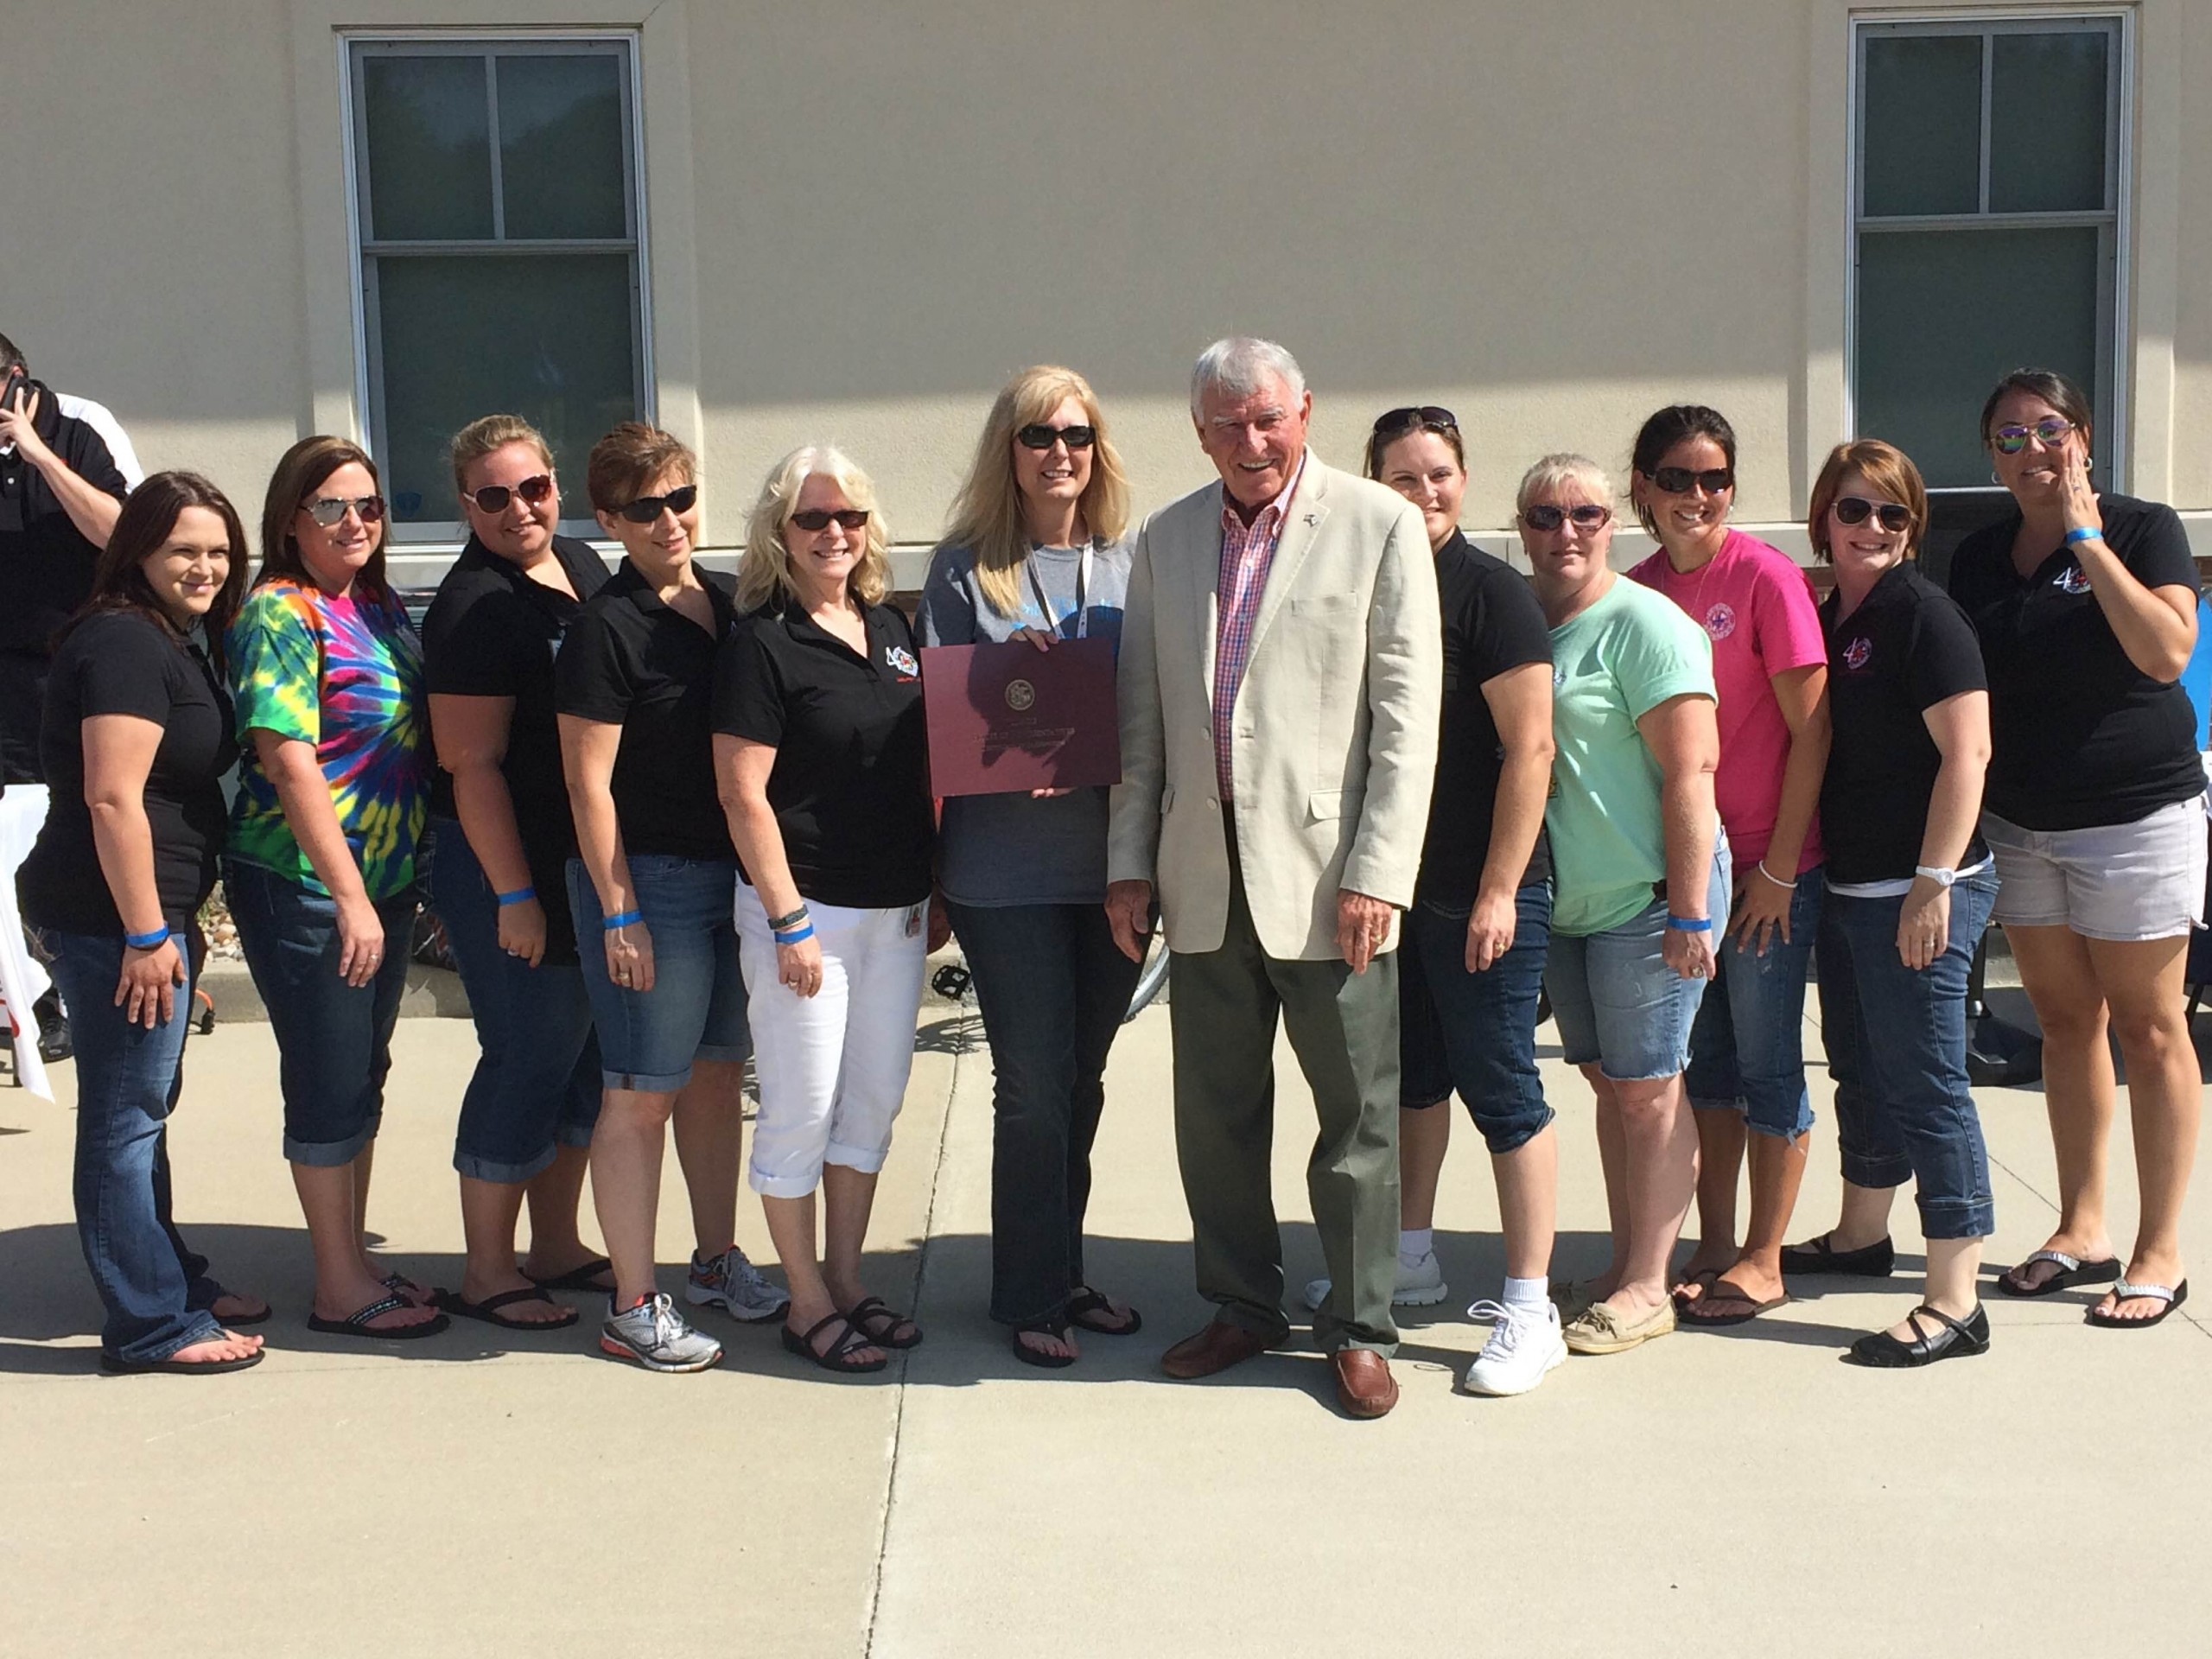 FCHD celebrates 40th anniversary, Rep. Cavaletto on hand for event